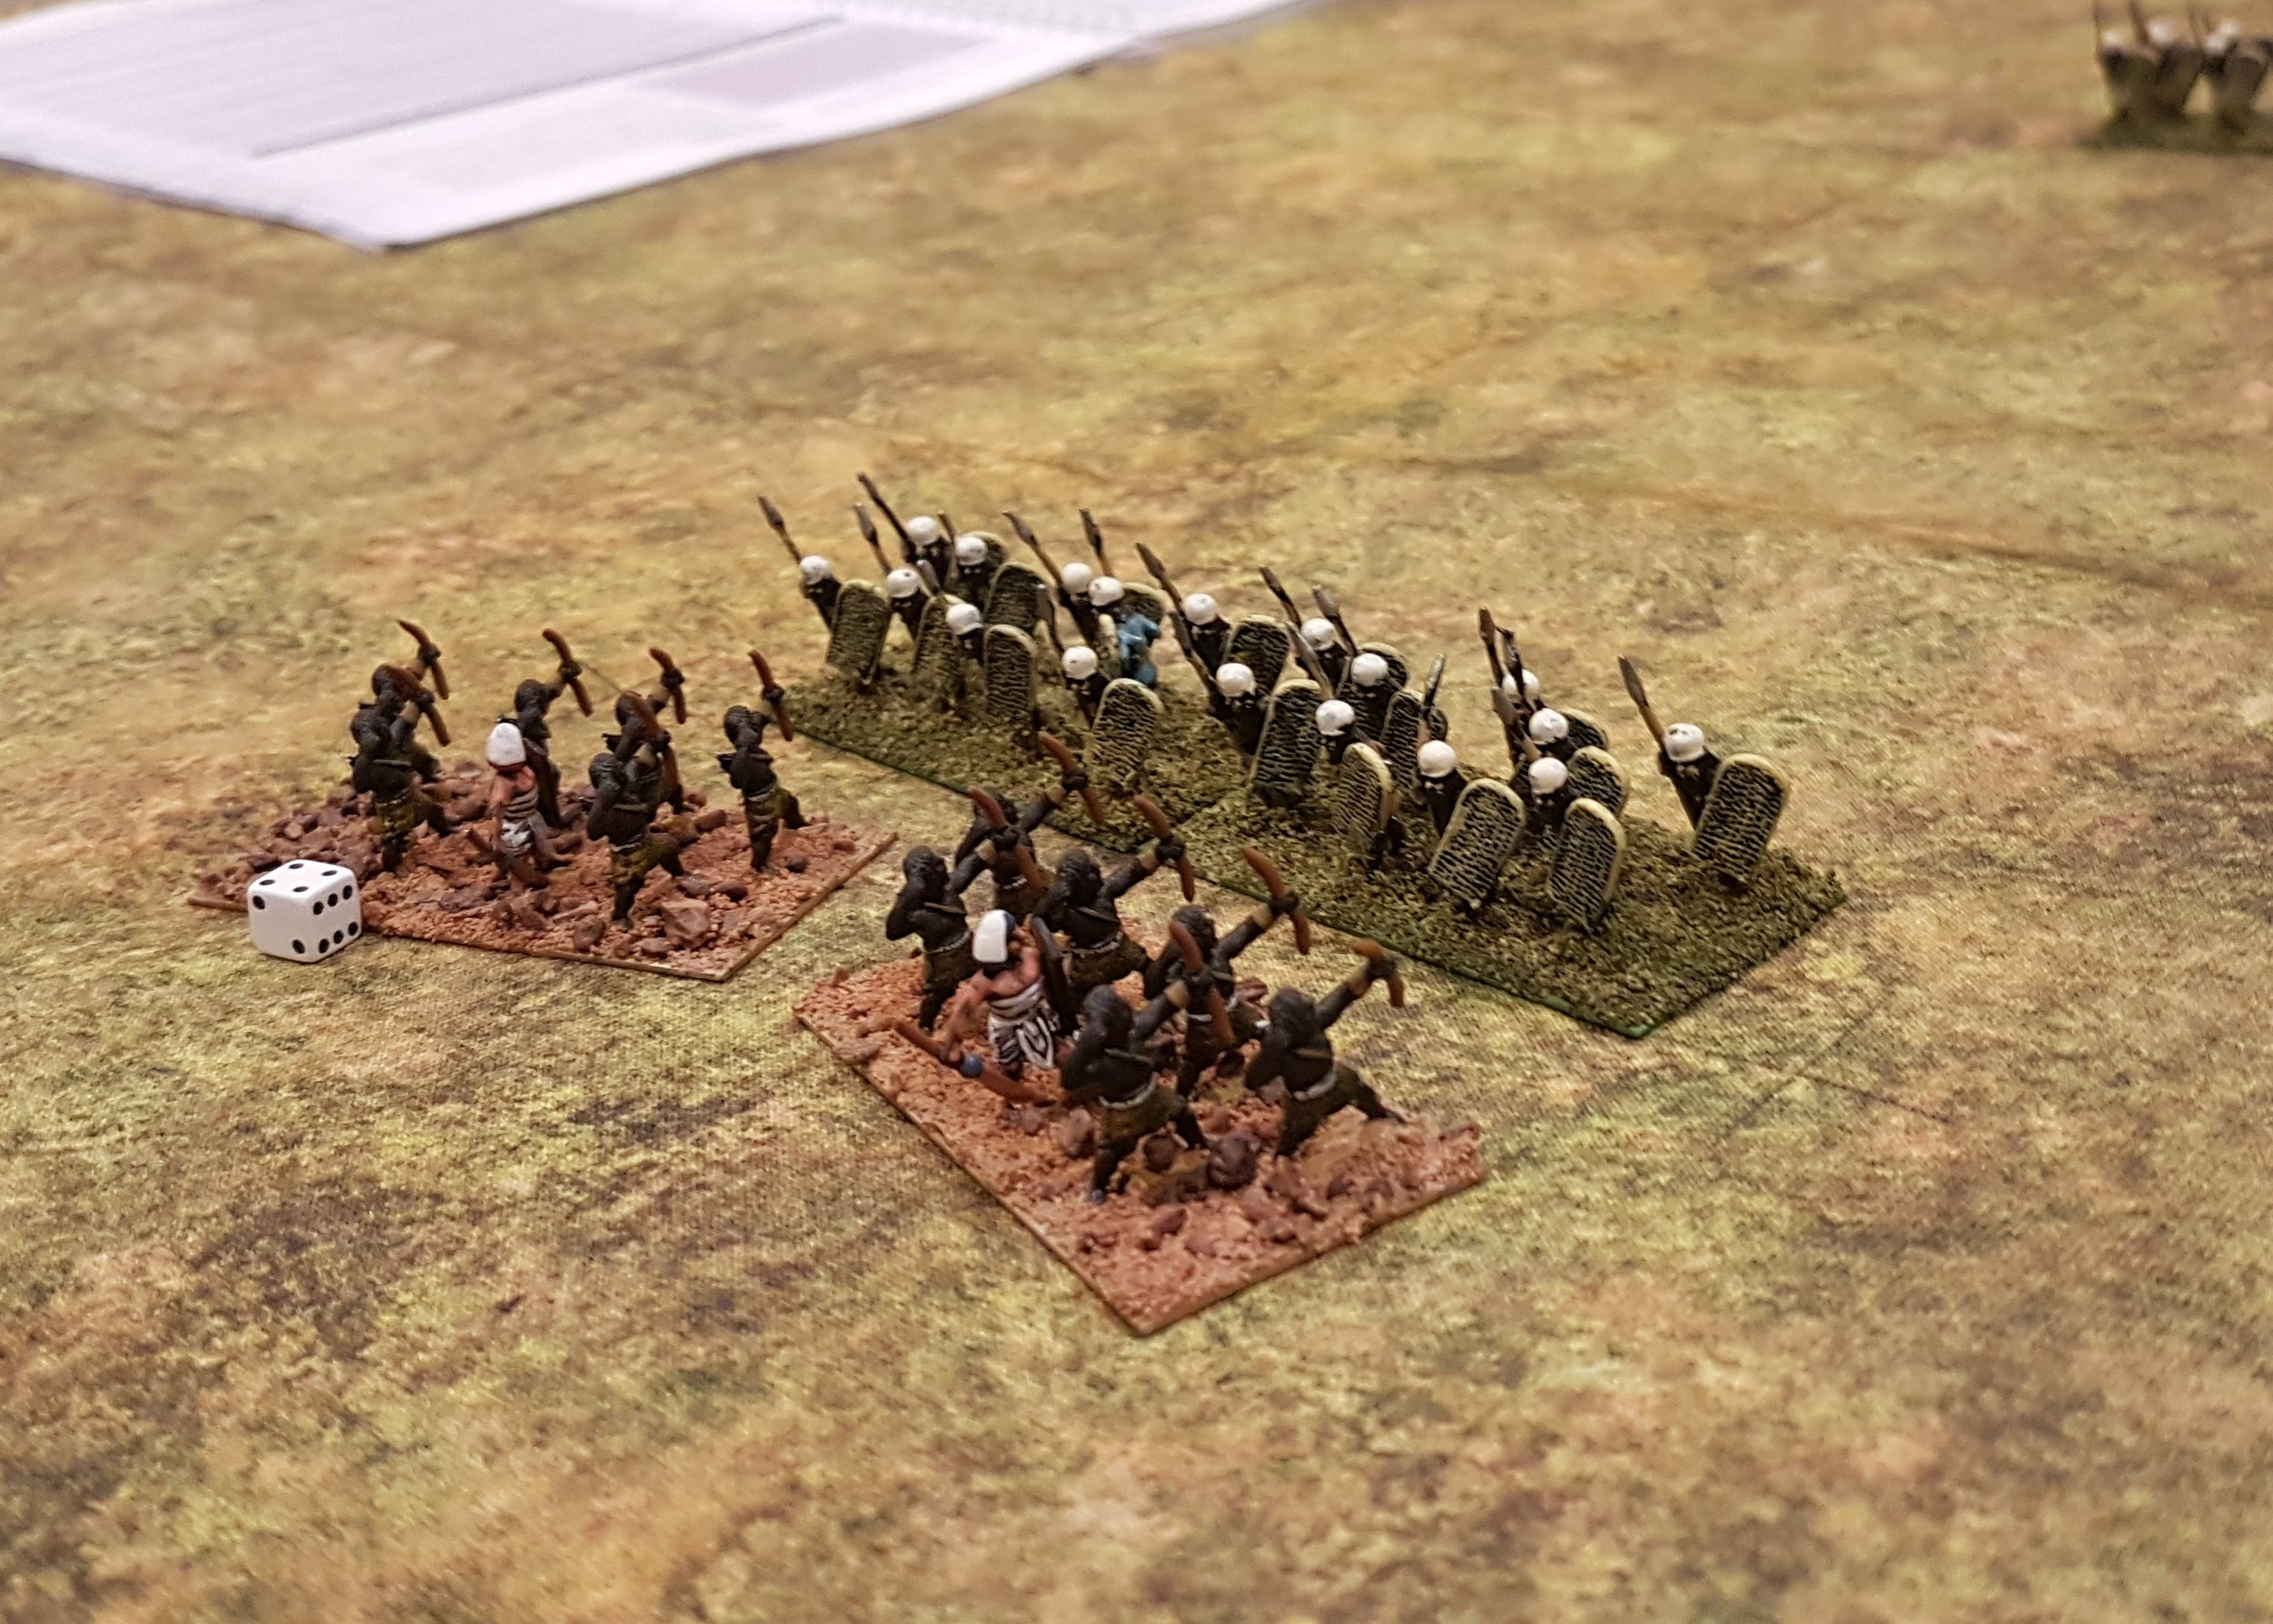 Formed and disordered units for TTS, along with a dice to mark ammo. Note grid intersection just to the right of the ordered spearmen.